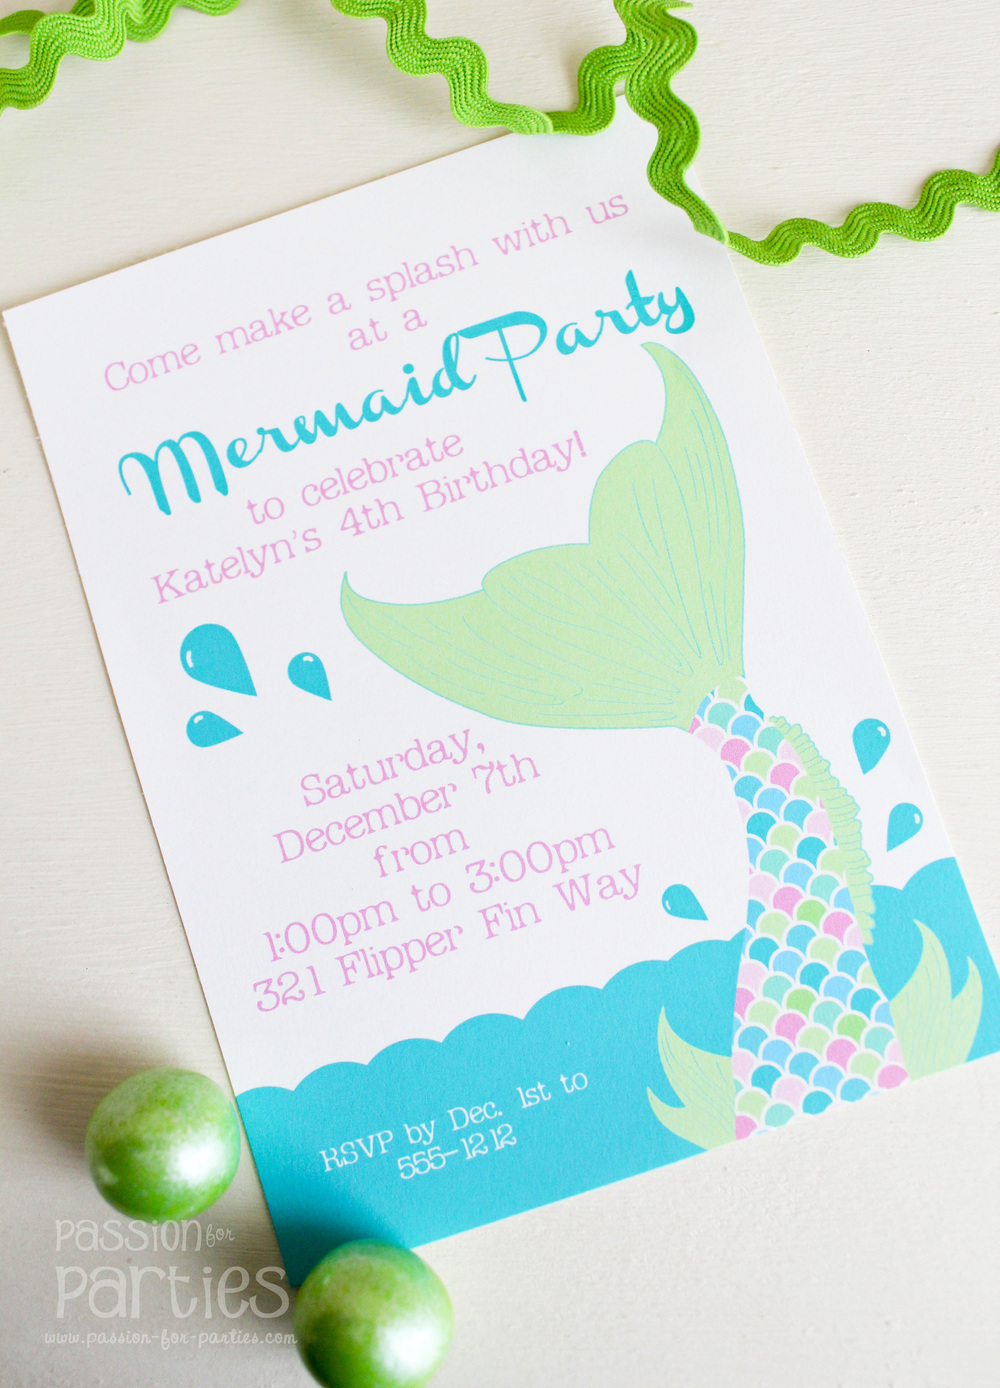 Mermaid Party Invitations — Jen T. by Design